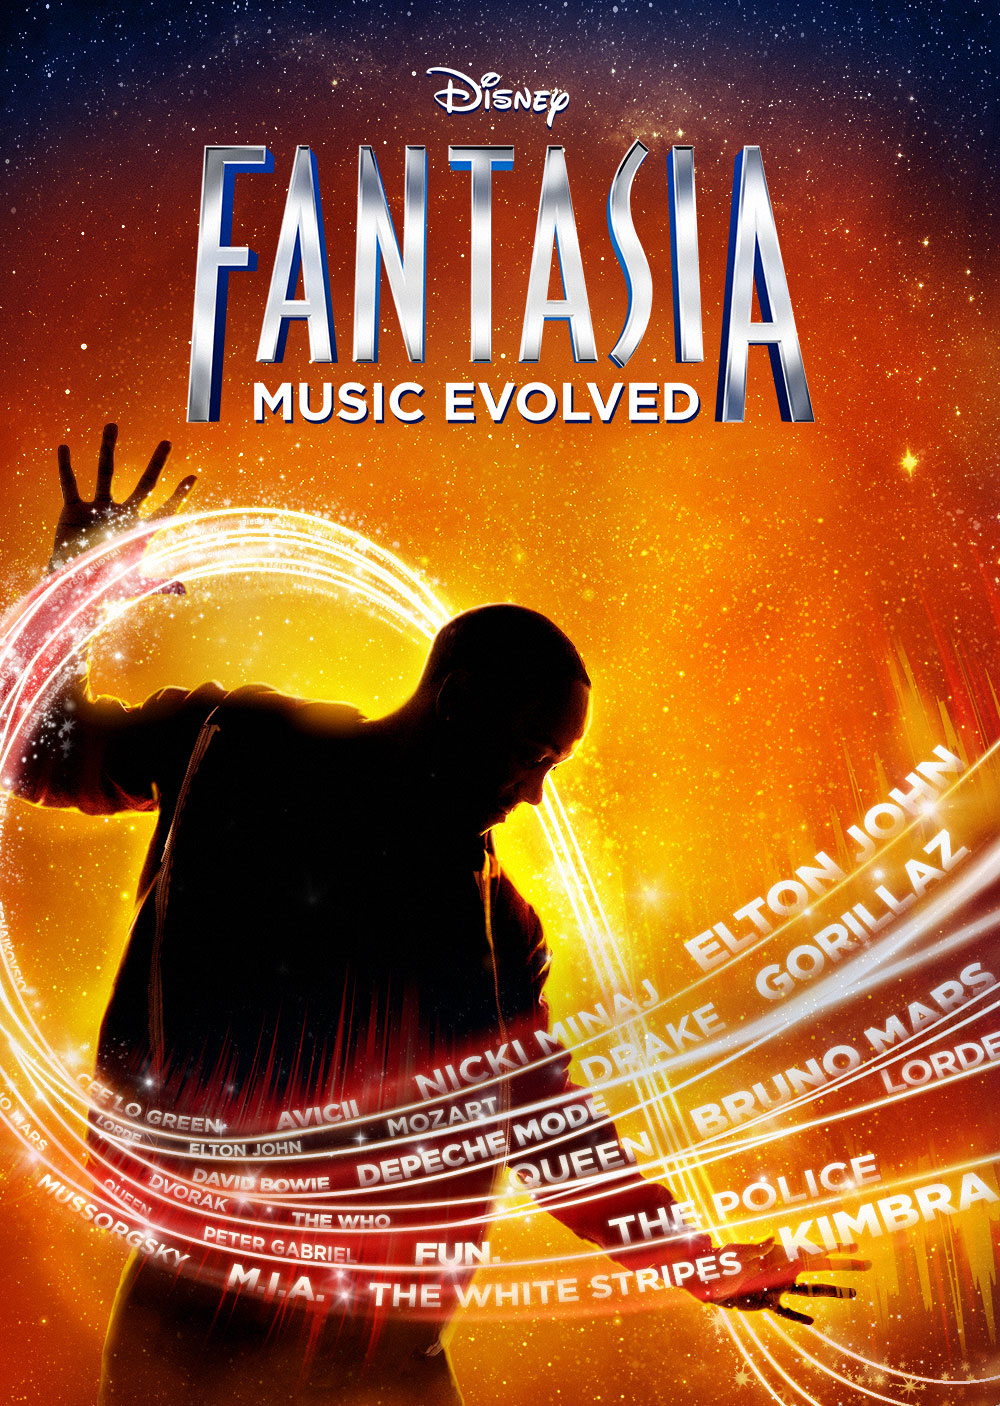 Fantasia - Music Evolved.jpeg